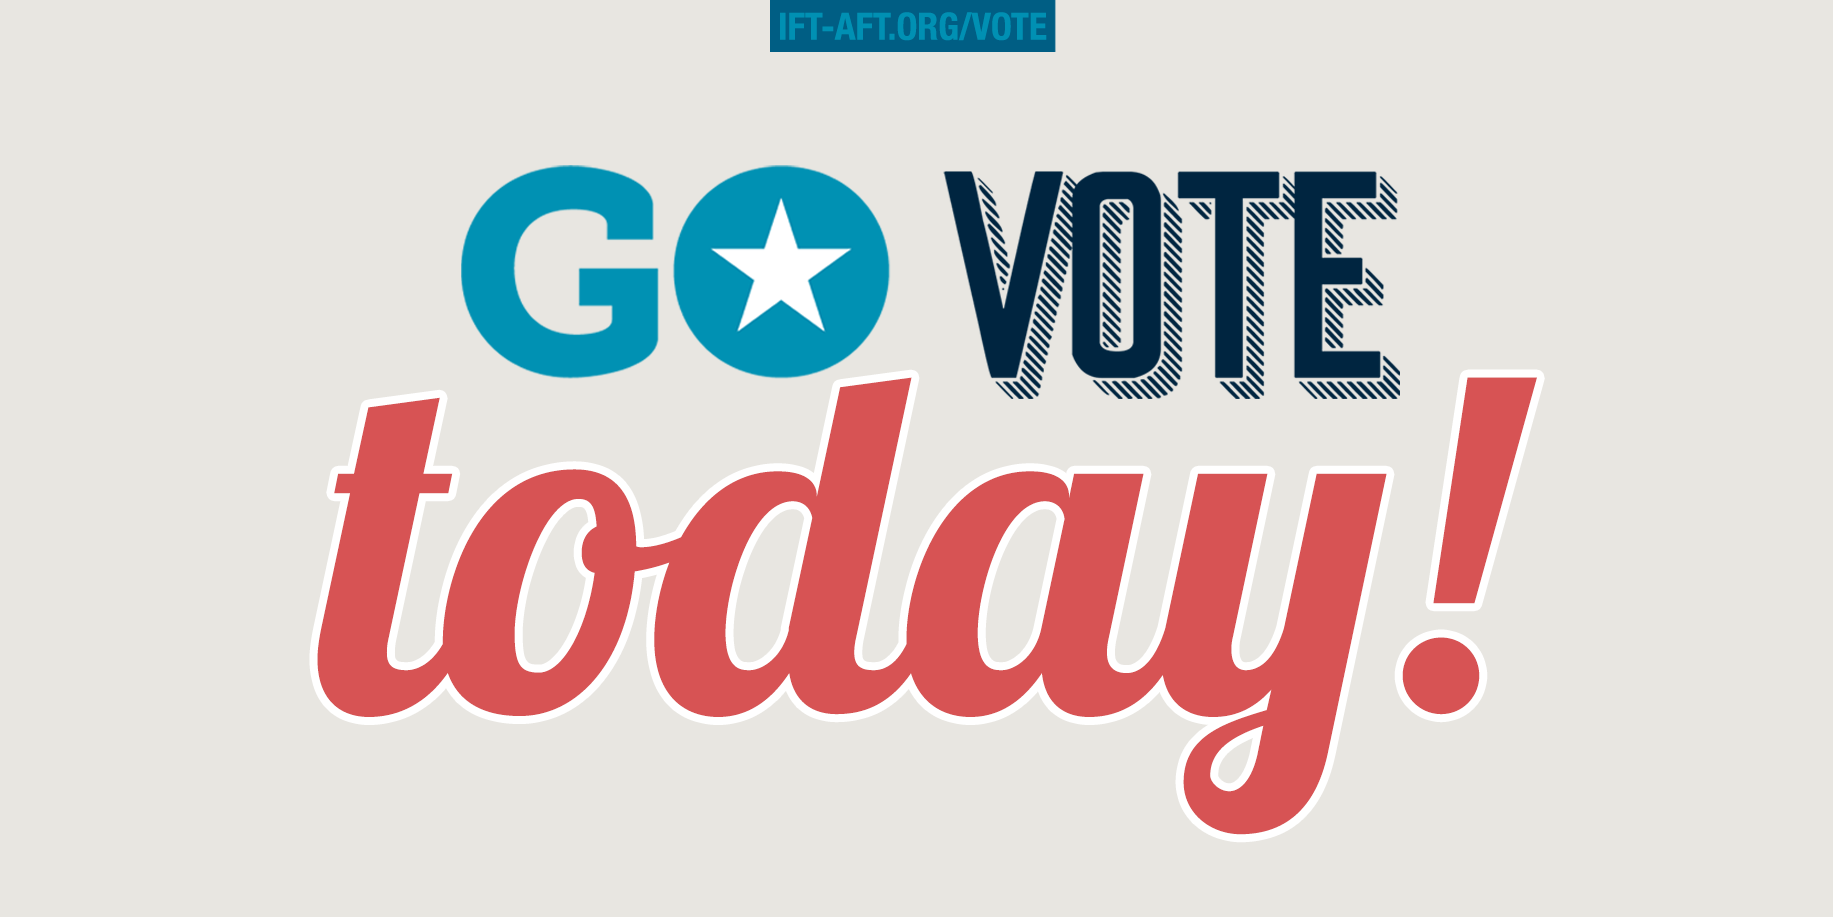 VoteToday.png